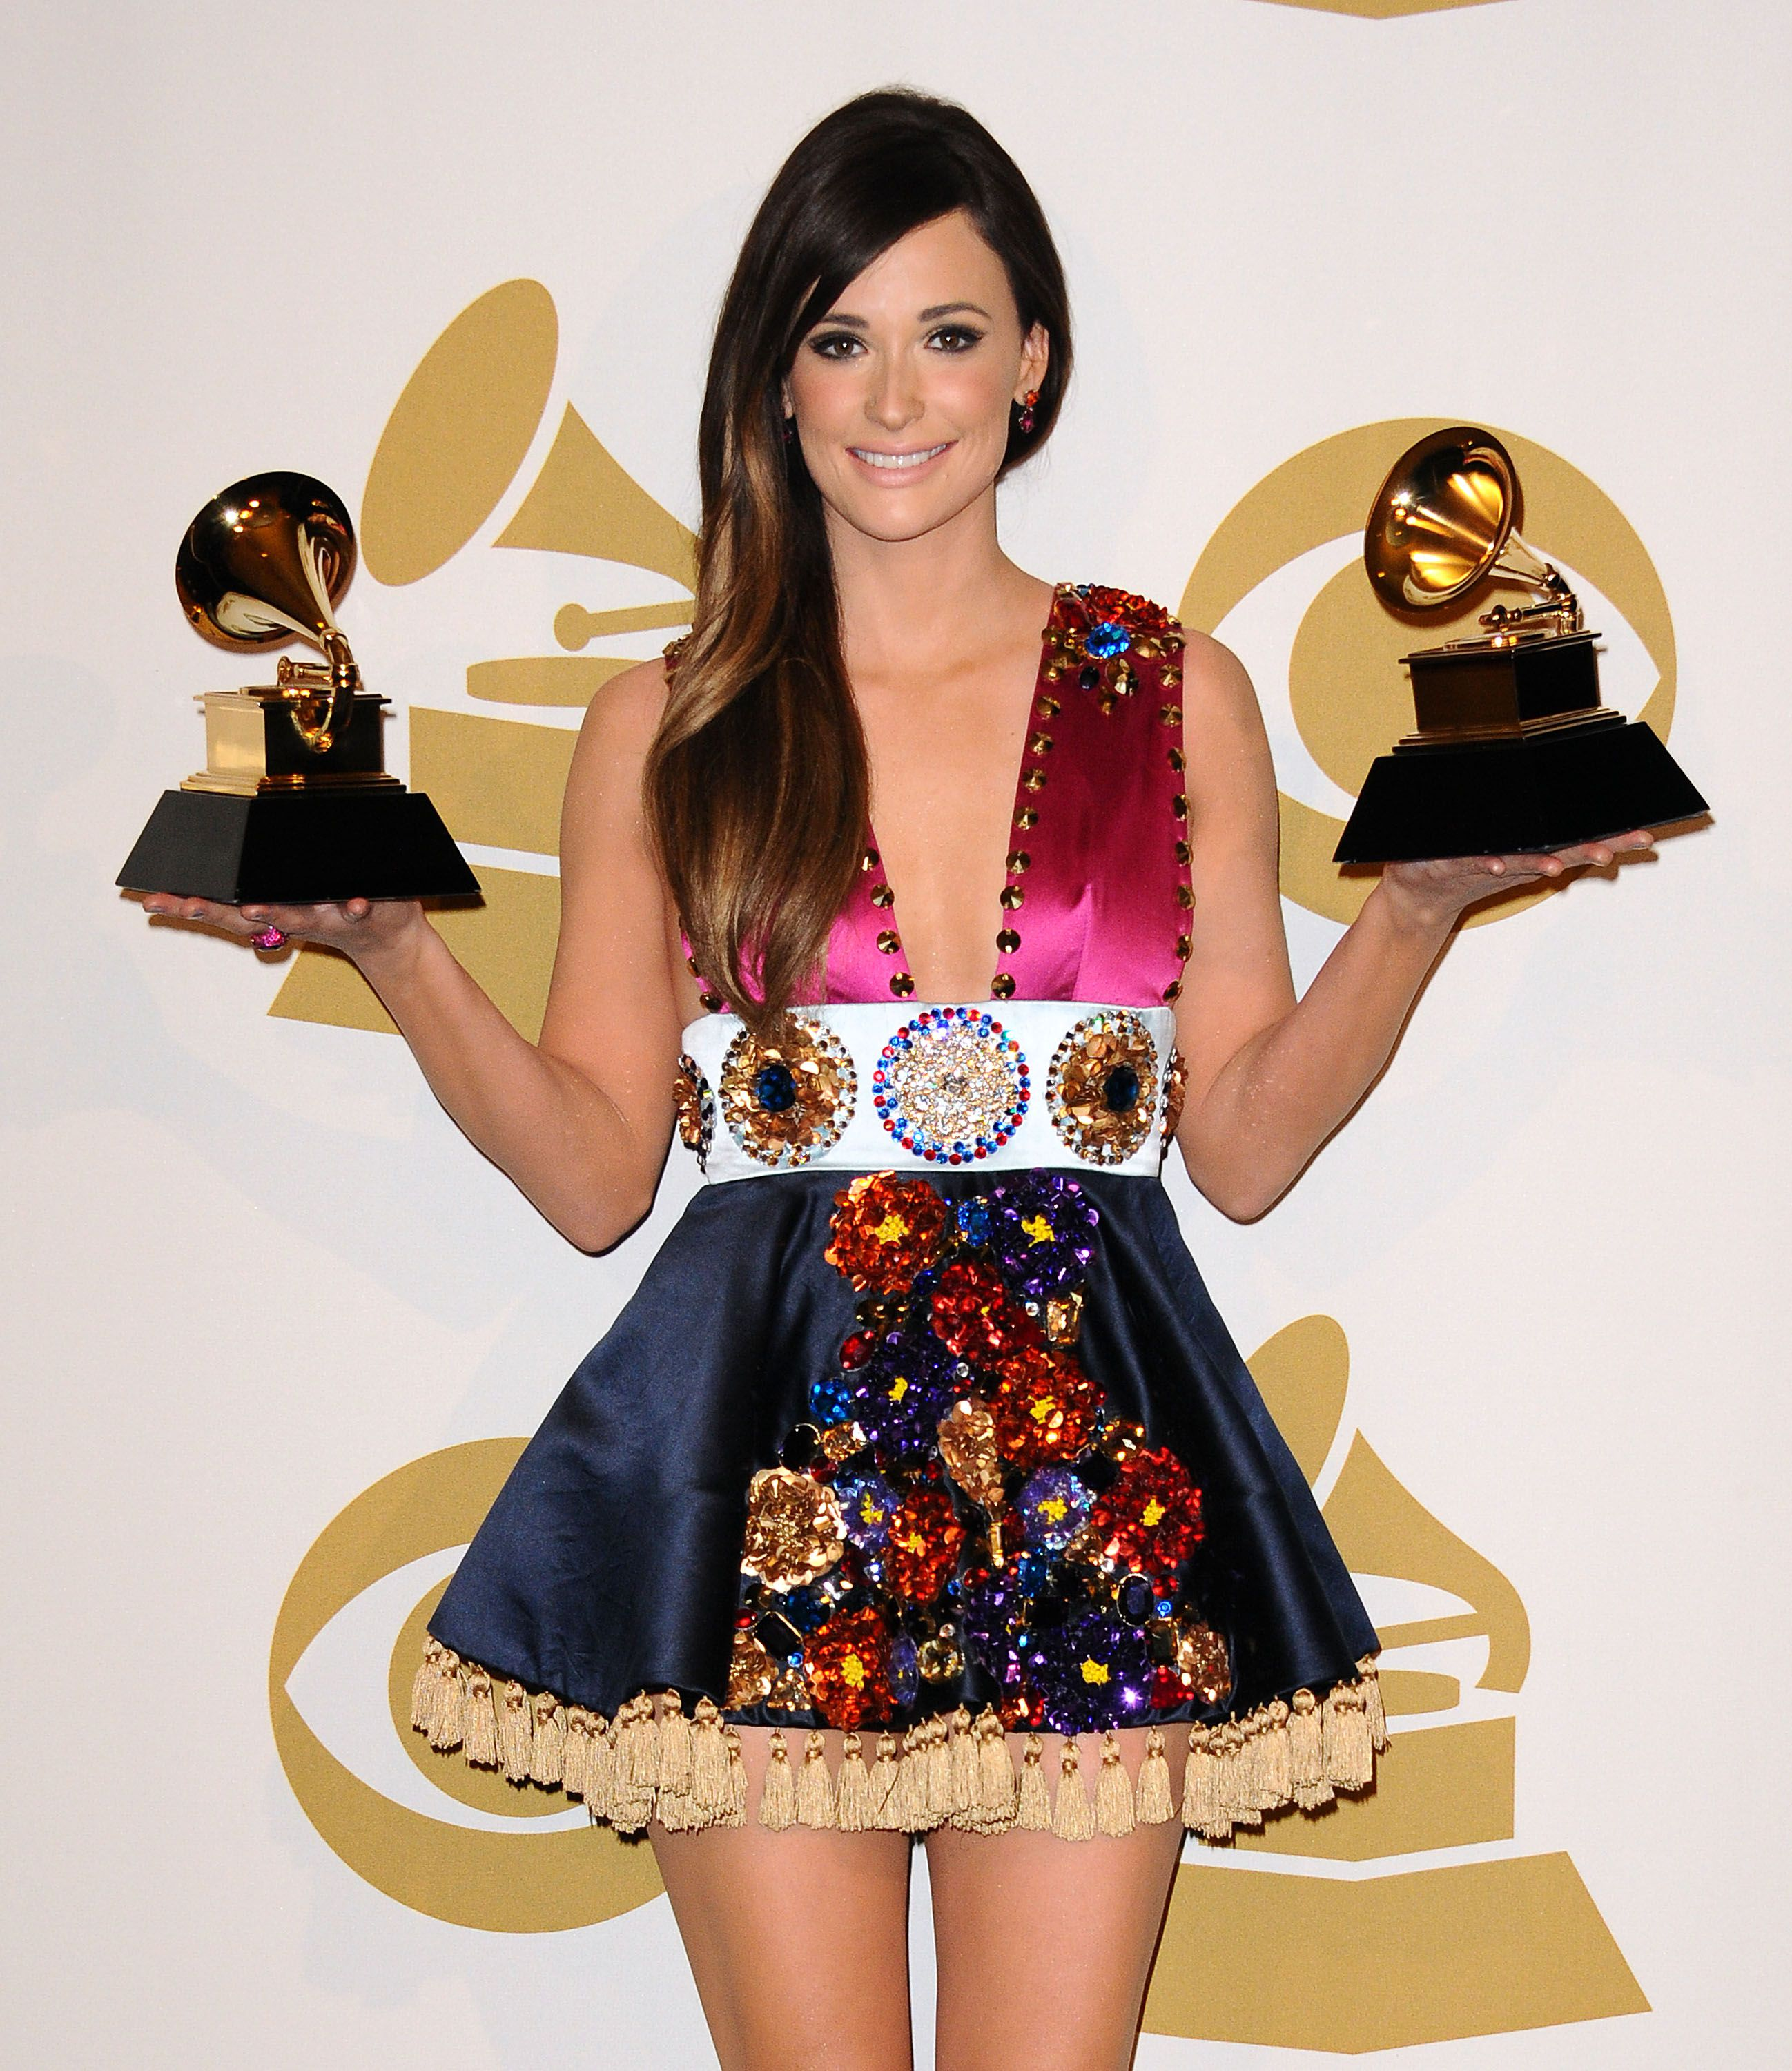 Space Cowboy Kacey Musgraves: 5 Things To Know About Grammy